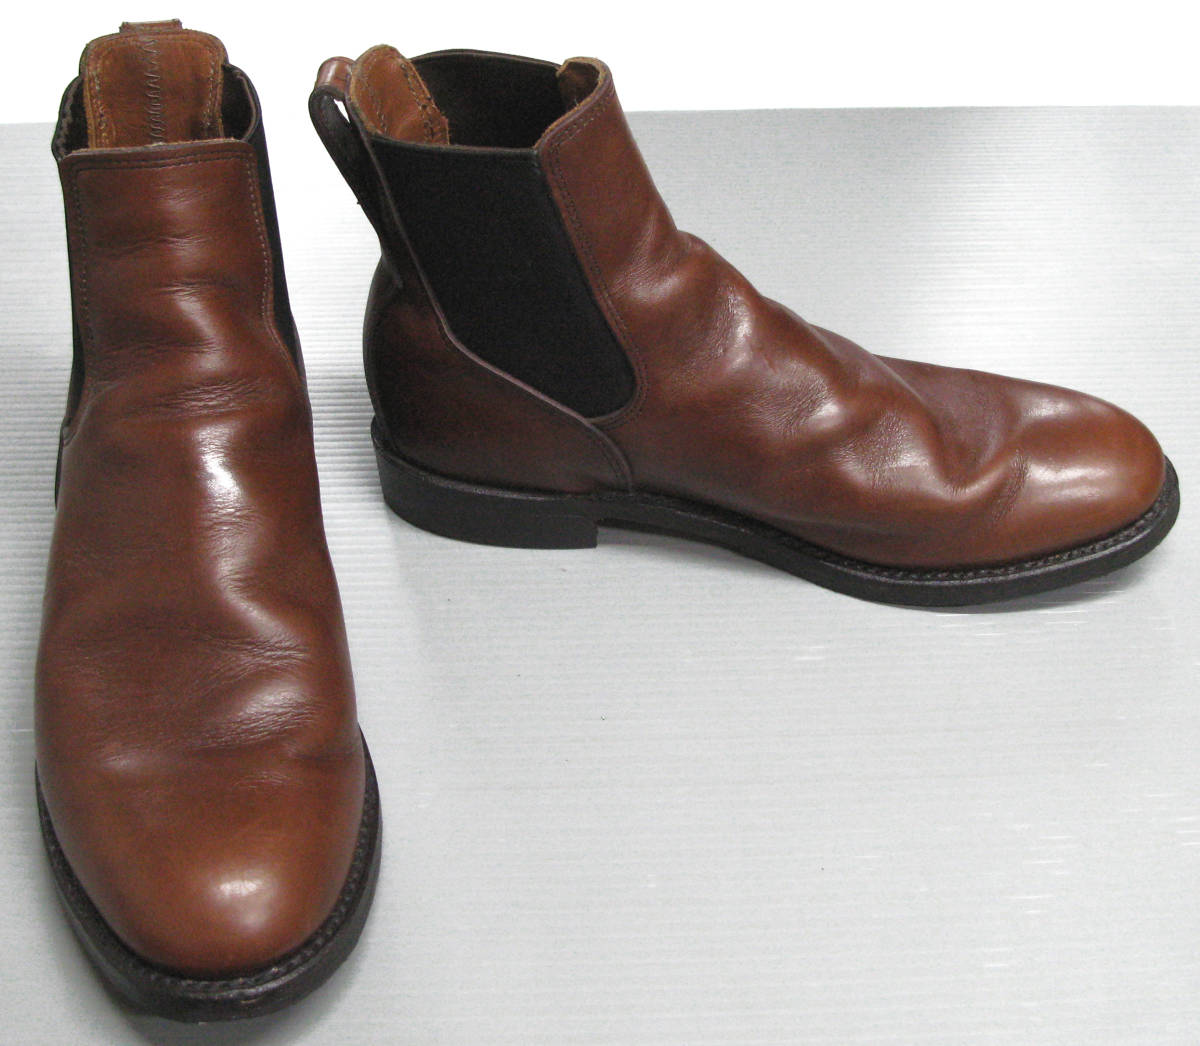 RED WING レッドウィング * サイドゴア ブーツ RED WING boots 9078 Mil-1 Congress Boots _画像1